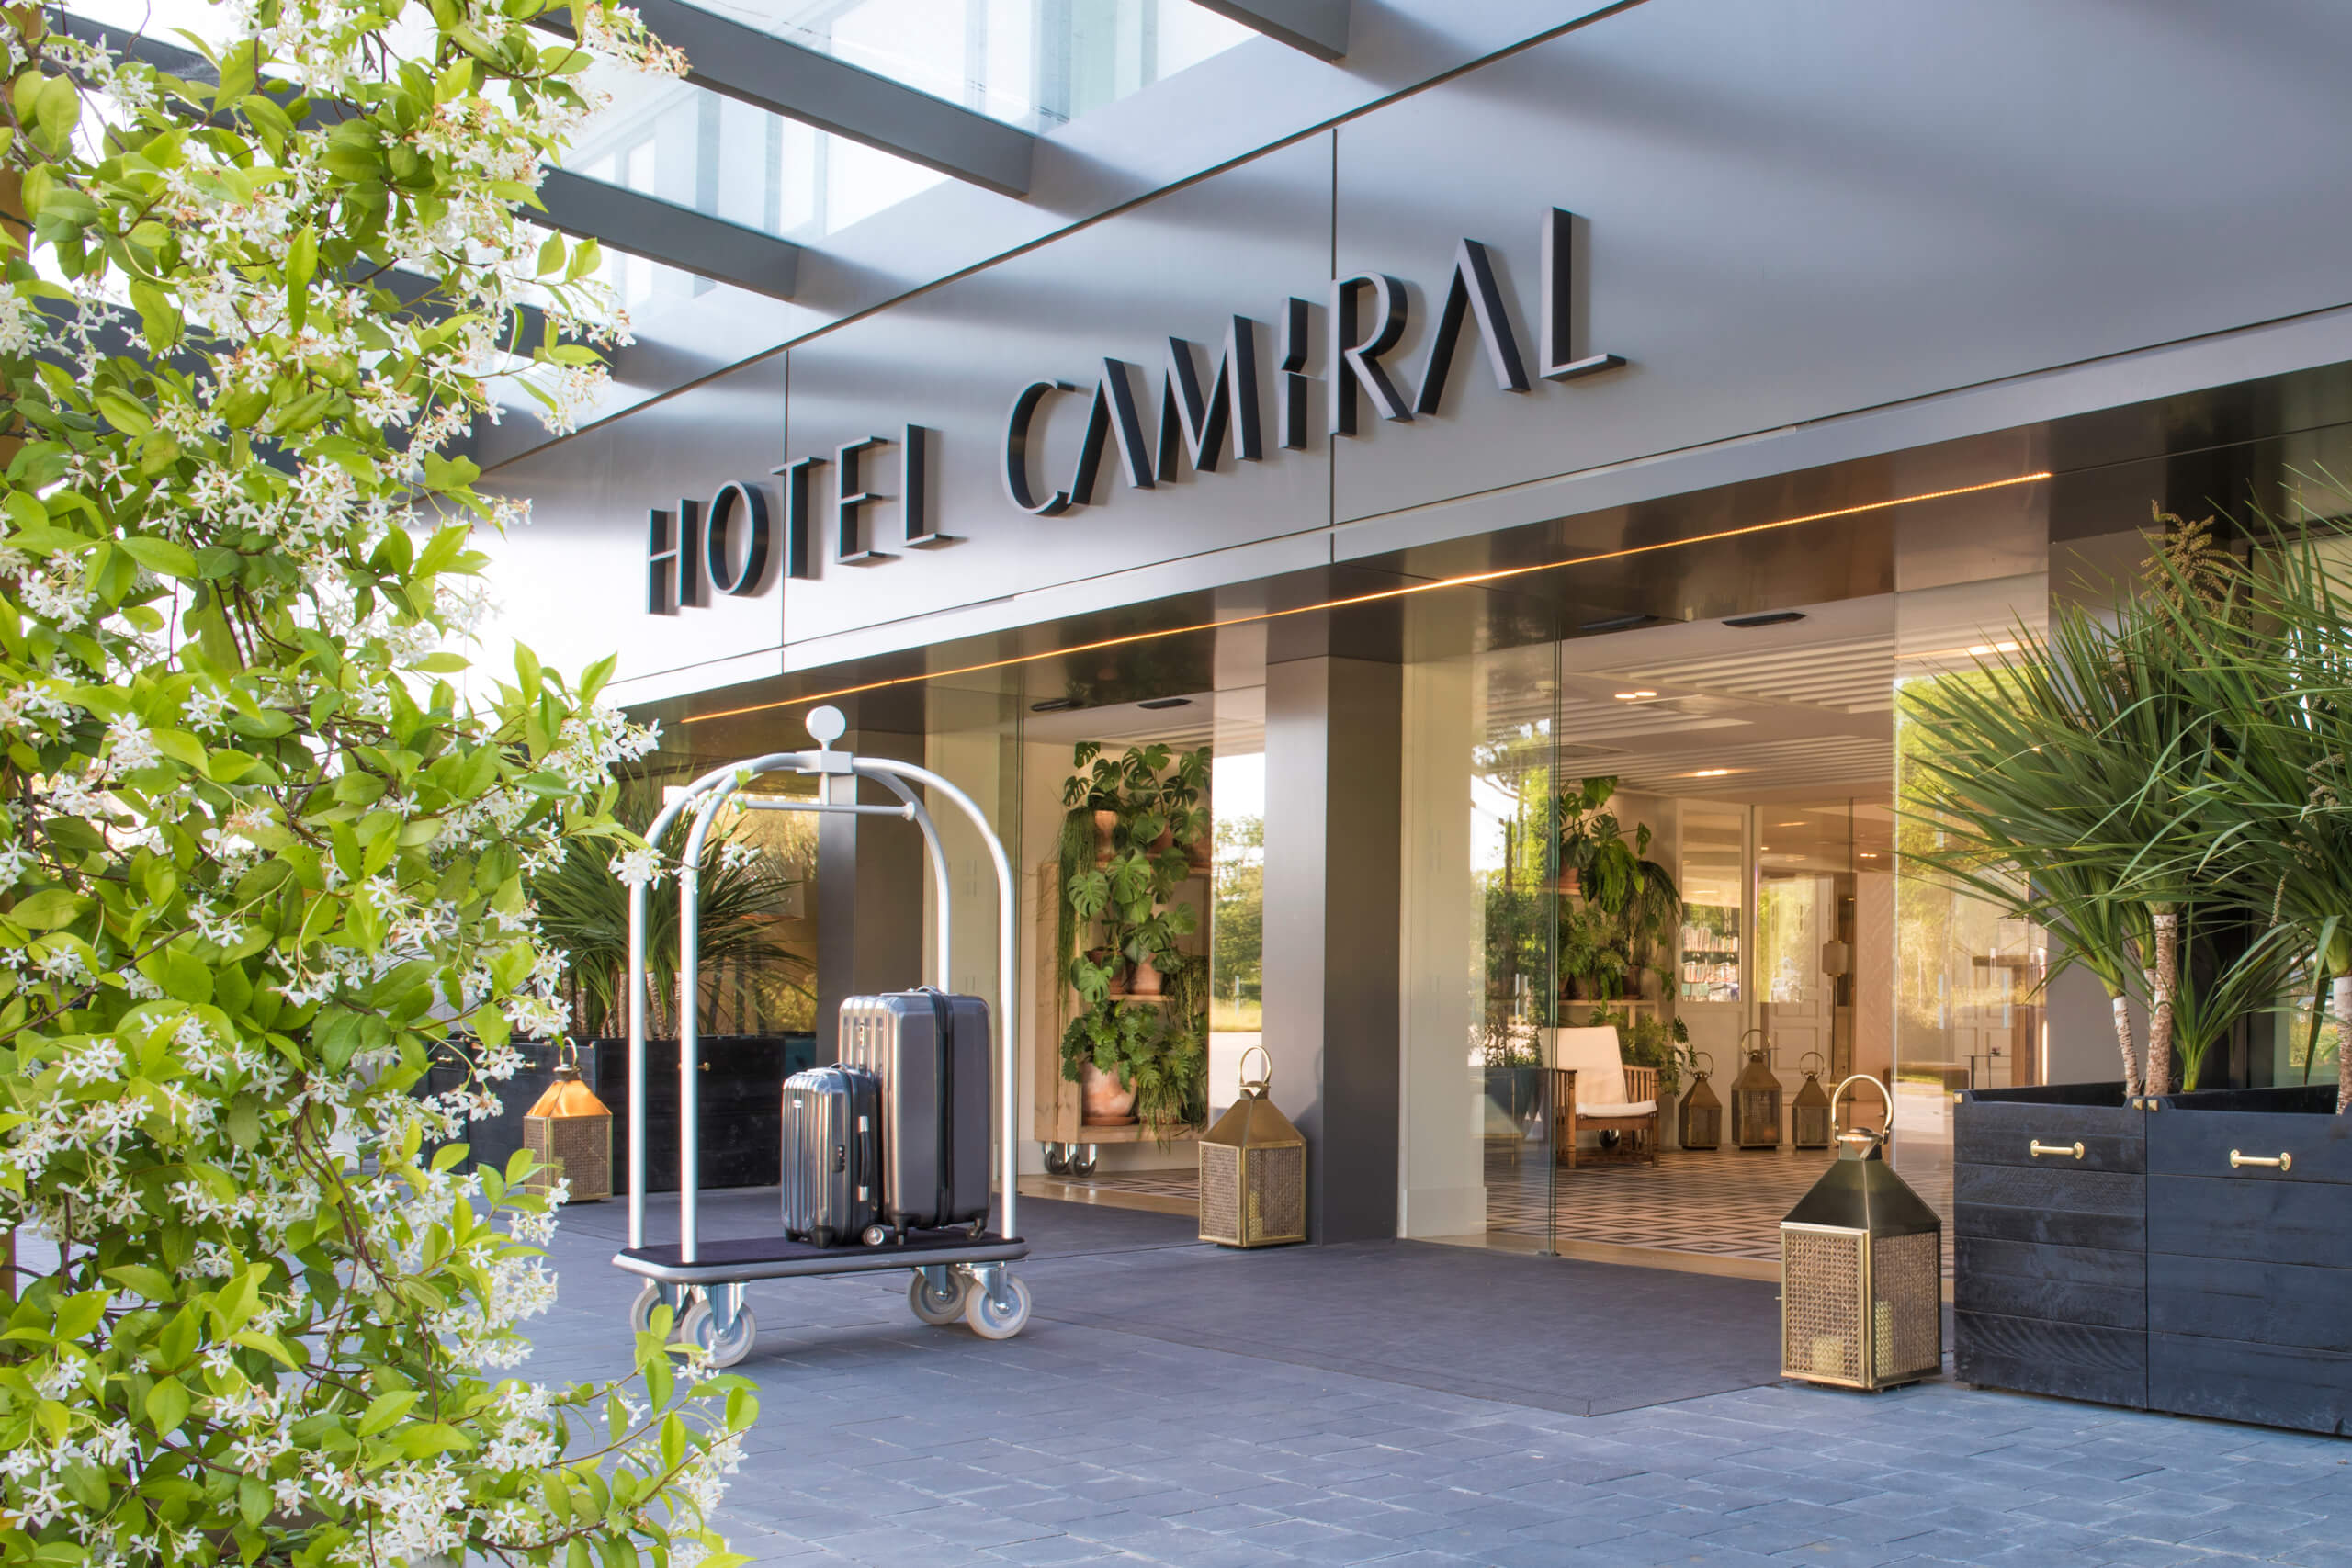 Hotel Camiral, Girona, Spain. Hotel photography by Michelle Chaplow